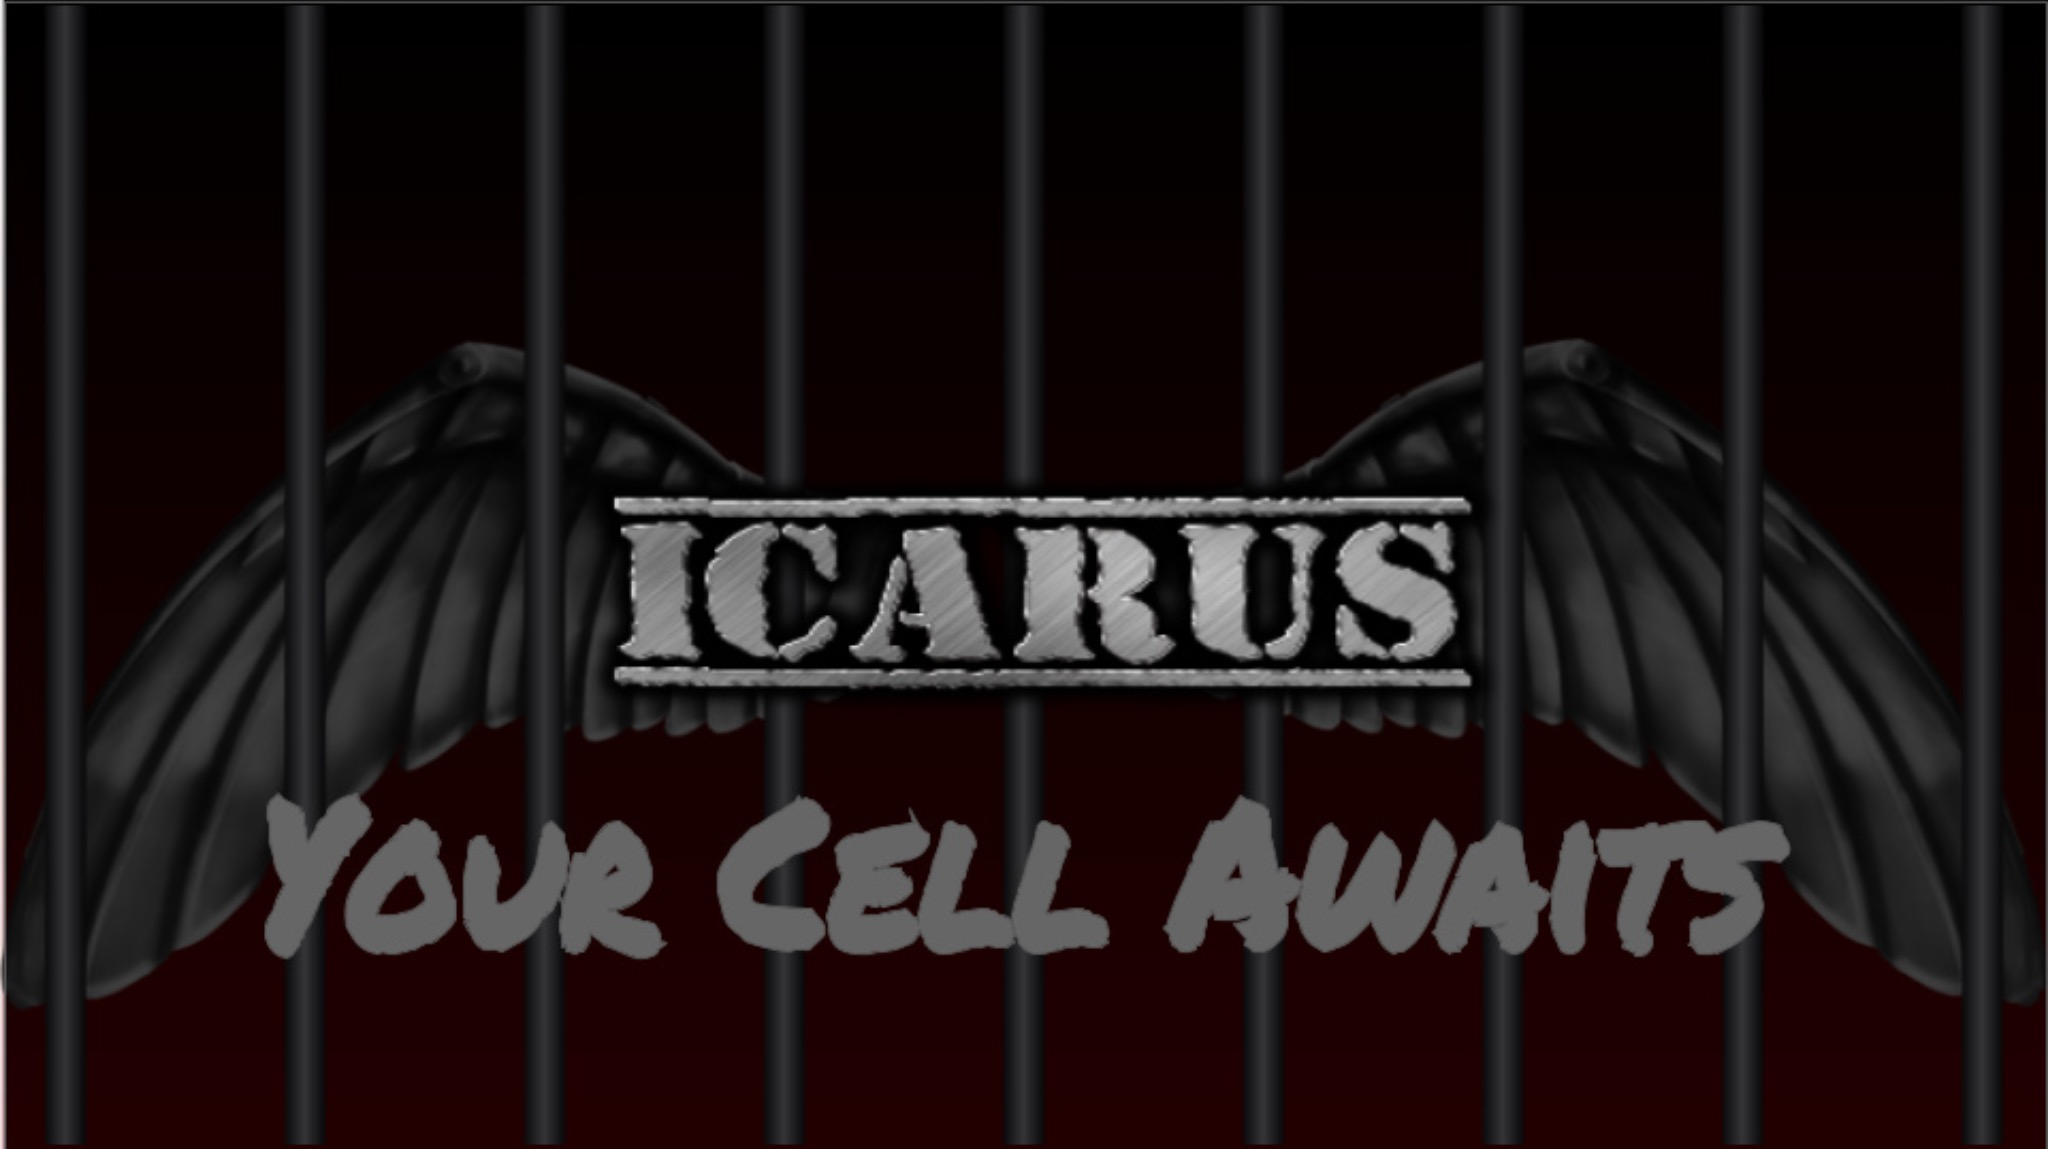 Icarus Roblox Hack Icarus Your Cell Awaits Closed Until Further Notice Multiplayer The Blockheads